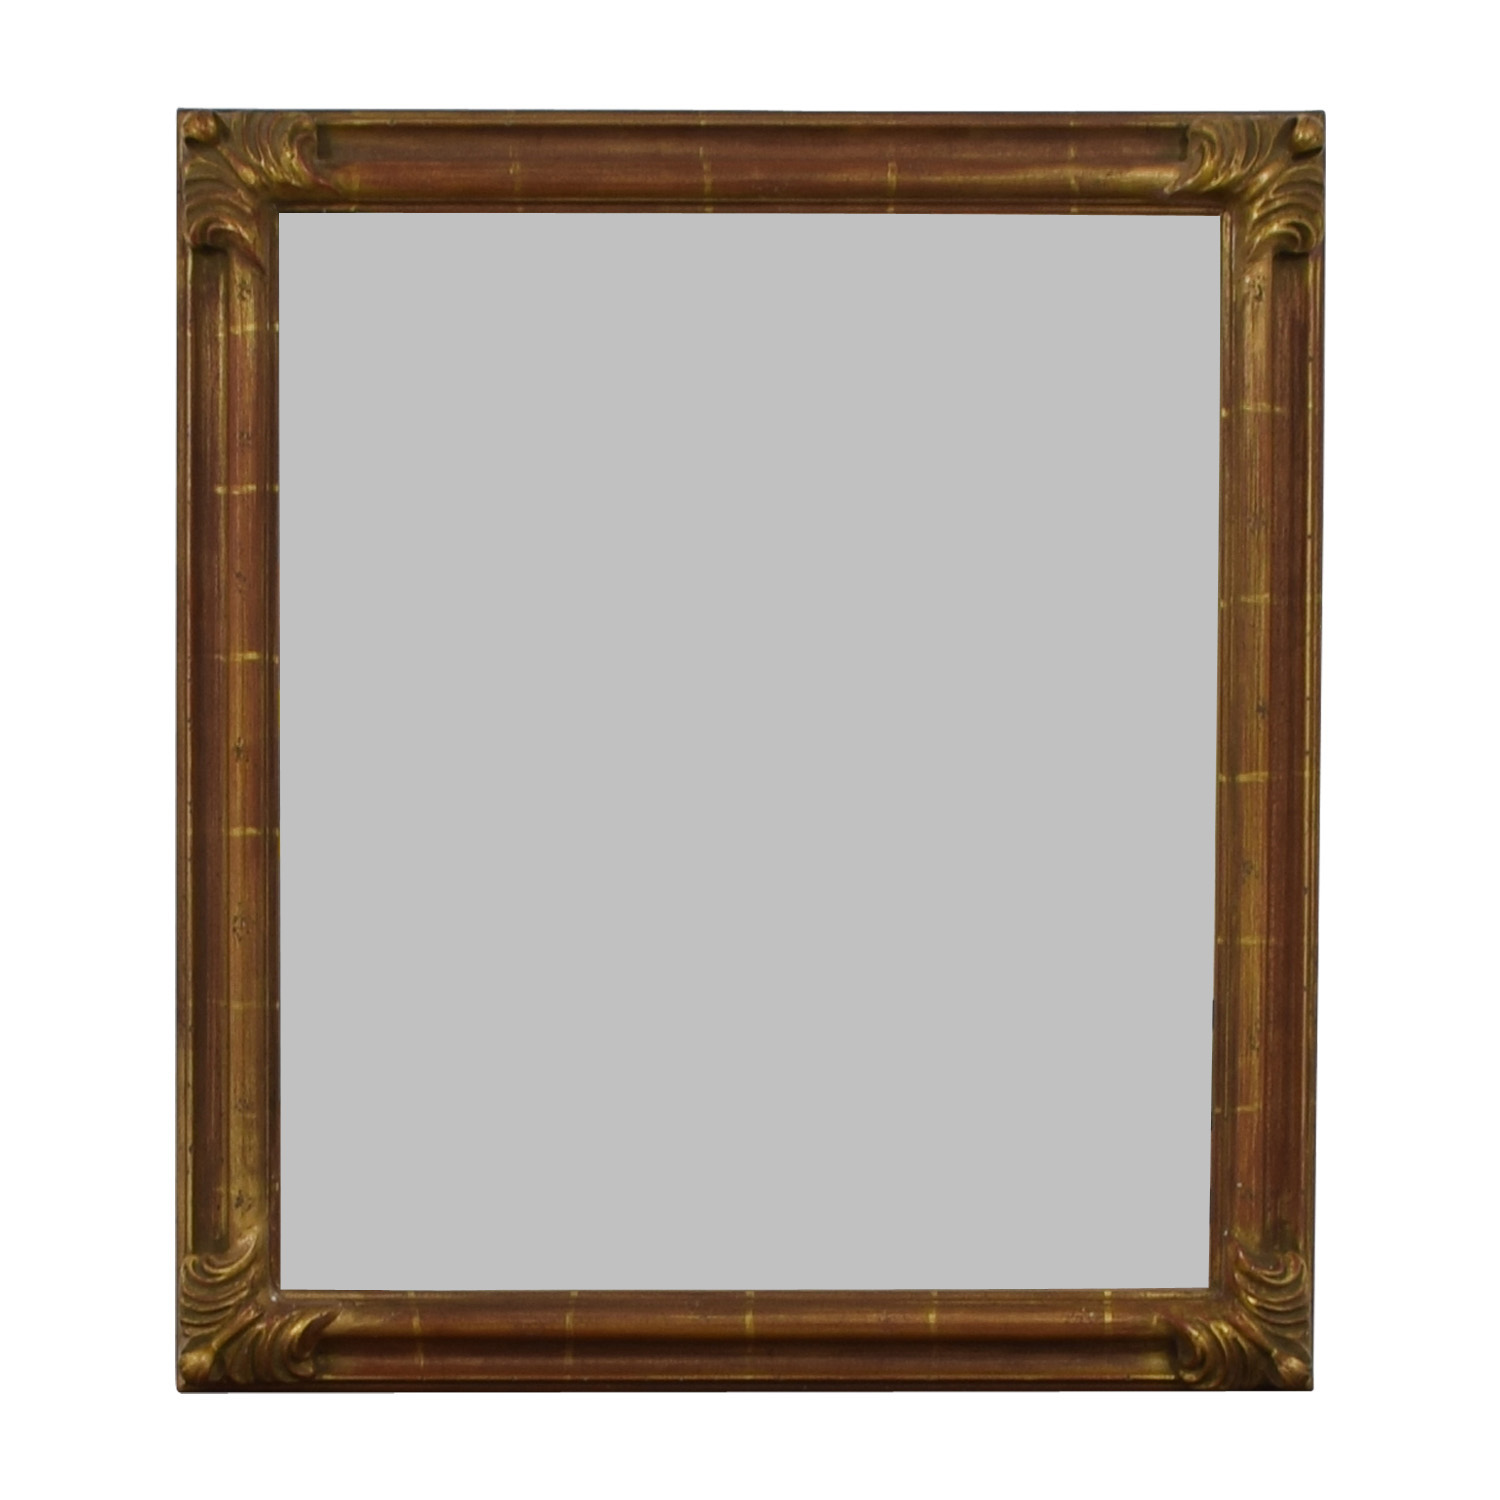 51% OFF - Pier 1 Imports Pier 1 Imports Distressed Gold Wall Mirror ...